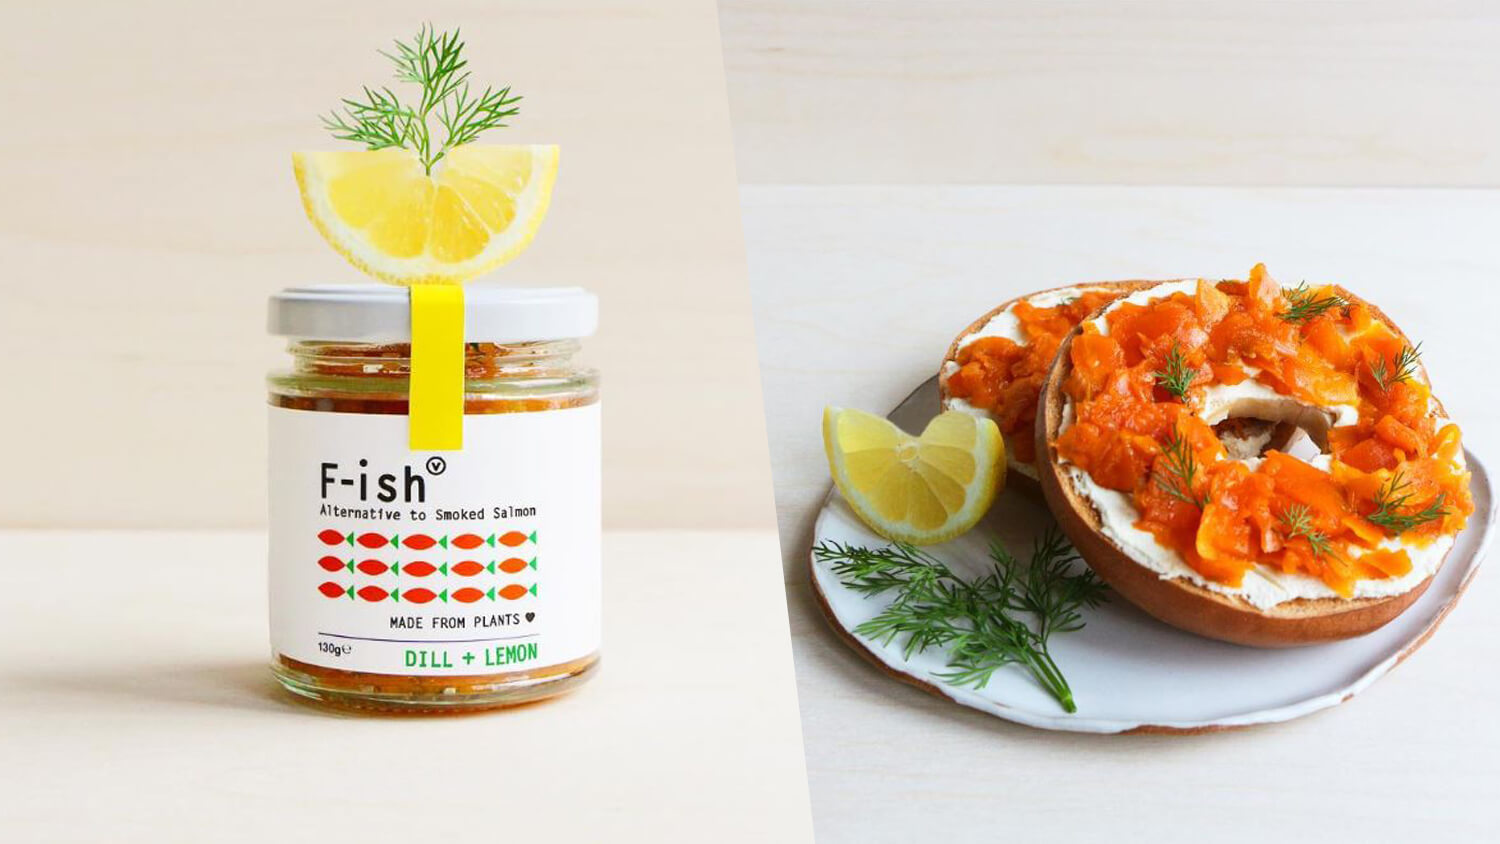 Jarred Vegan Smoked Salmon Launches in England